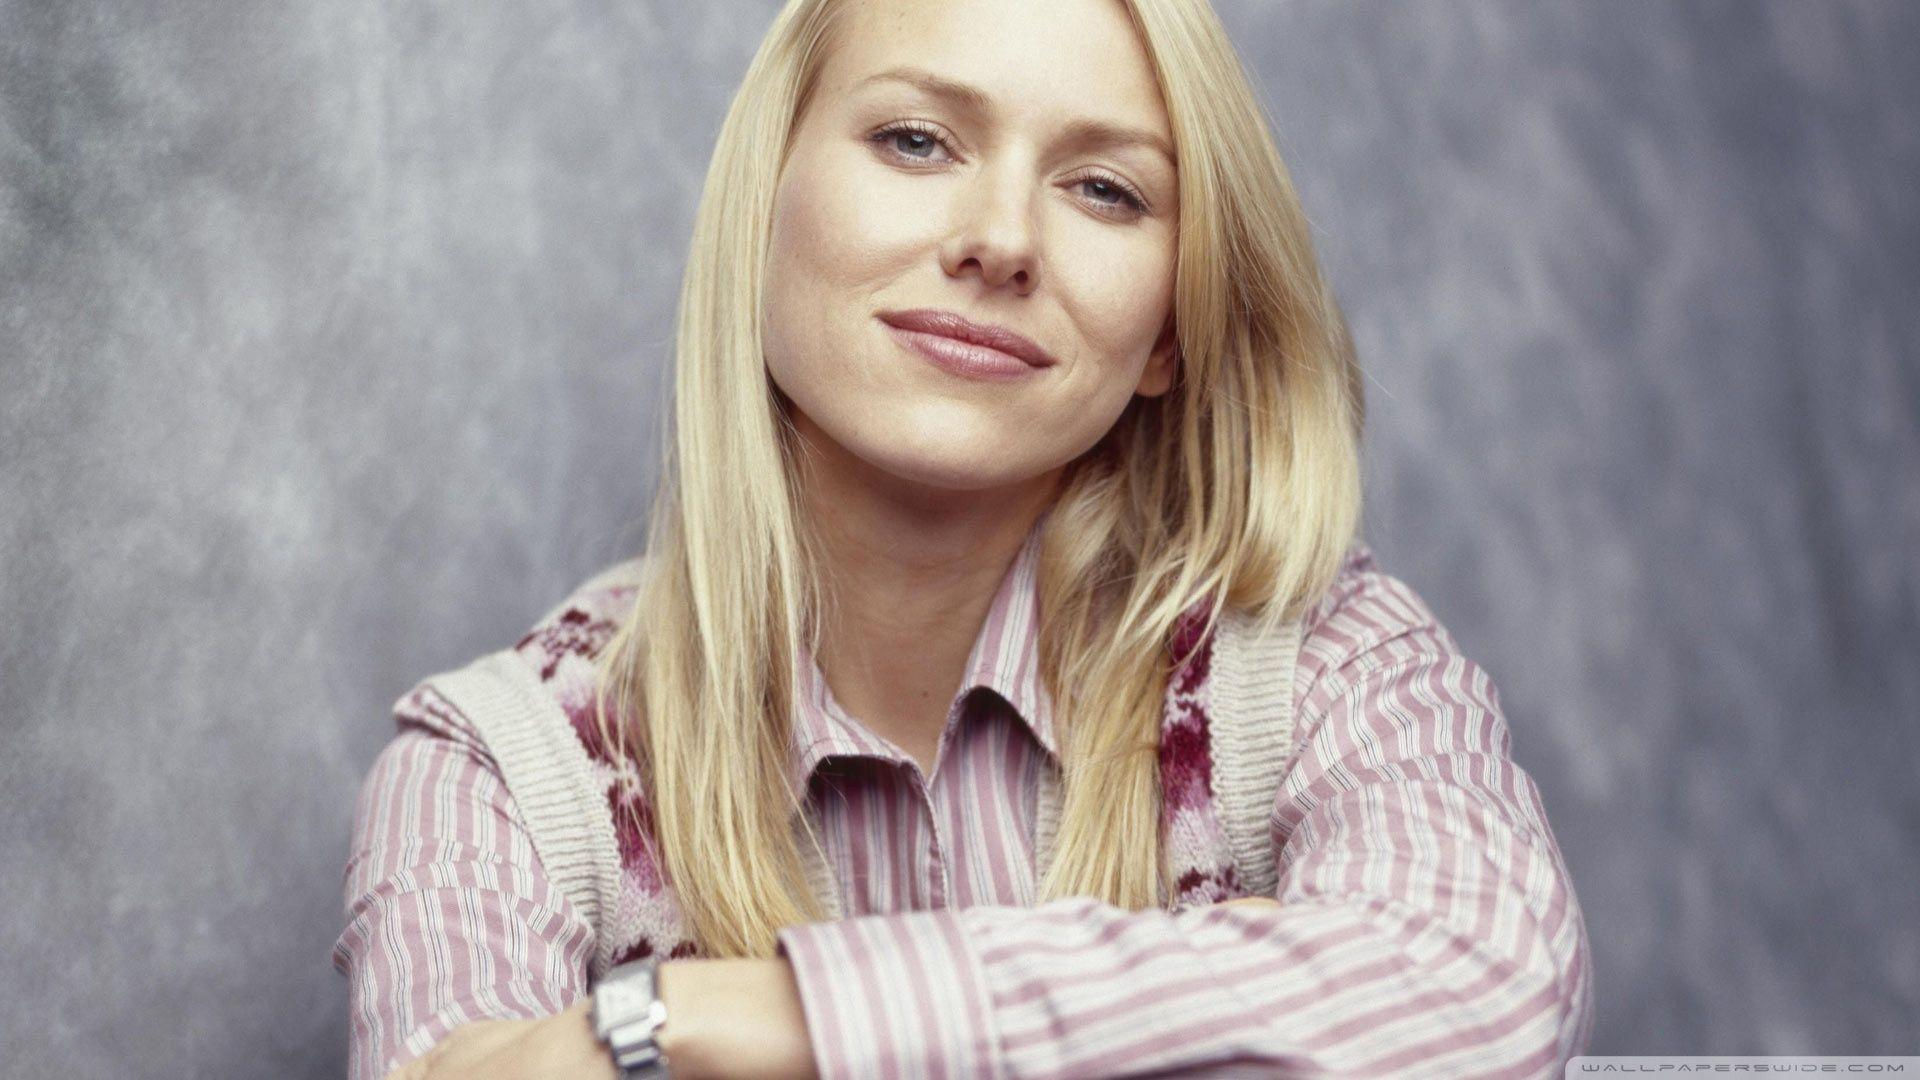 Fonds d'écran Naomi Watts : tous les wallpapers Naomi Watts